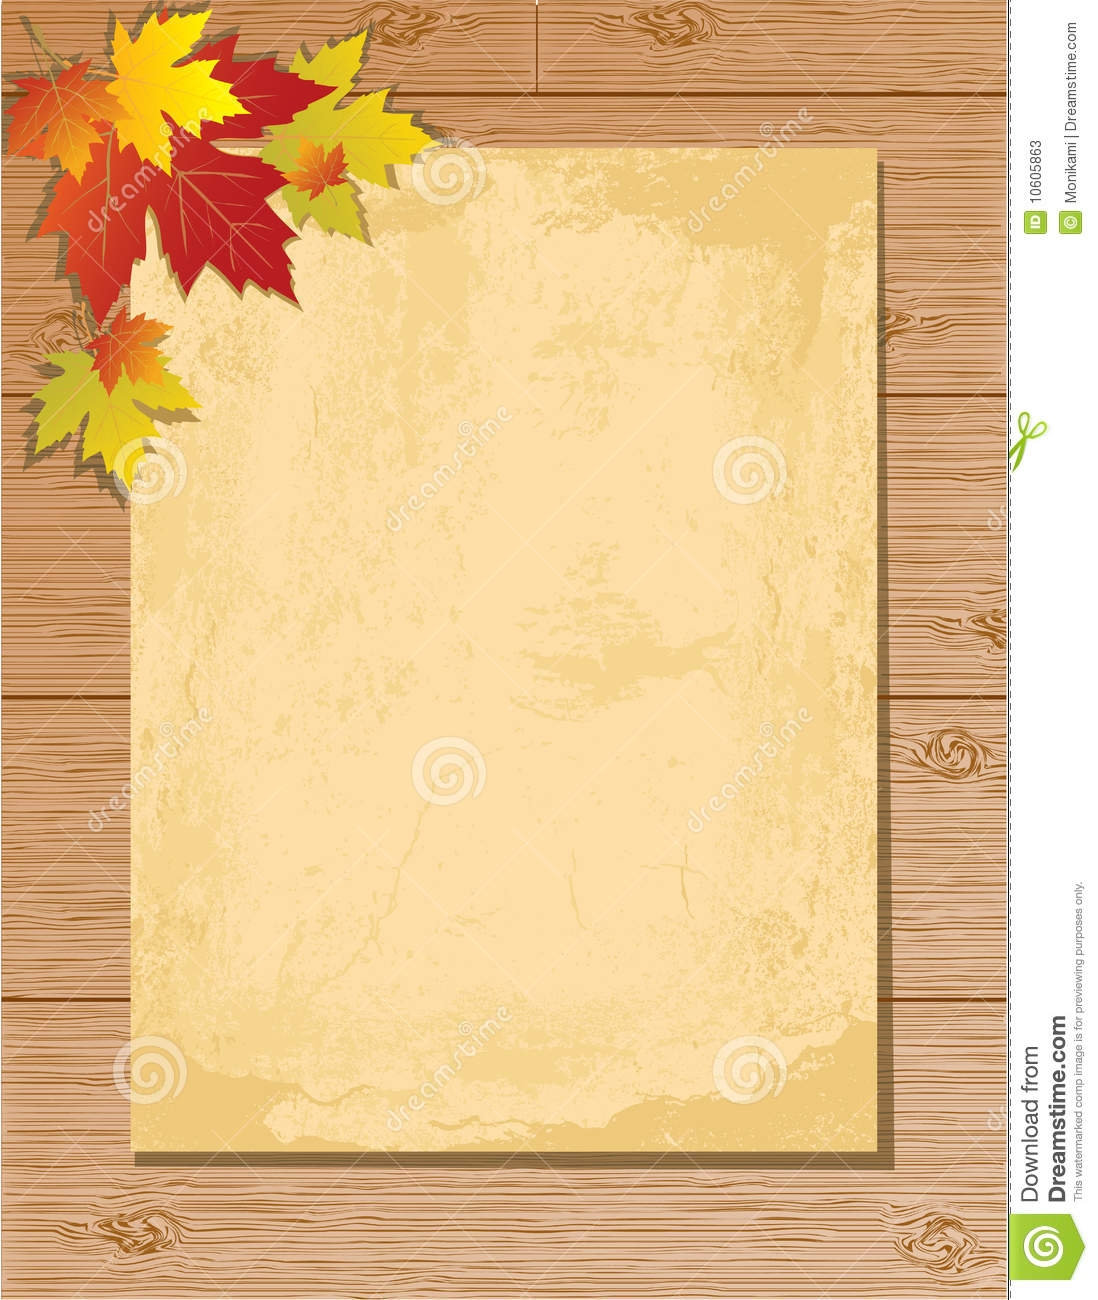 Letter Paper Clipart Background   clipartsgramcom 1098x1300